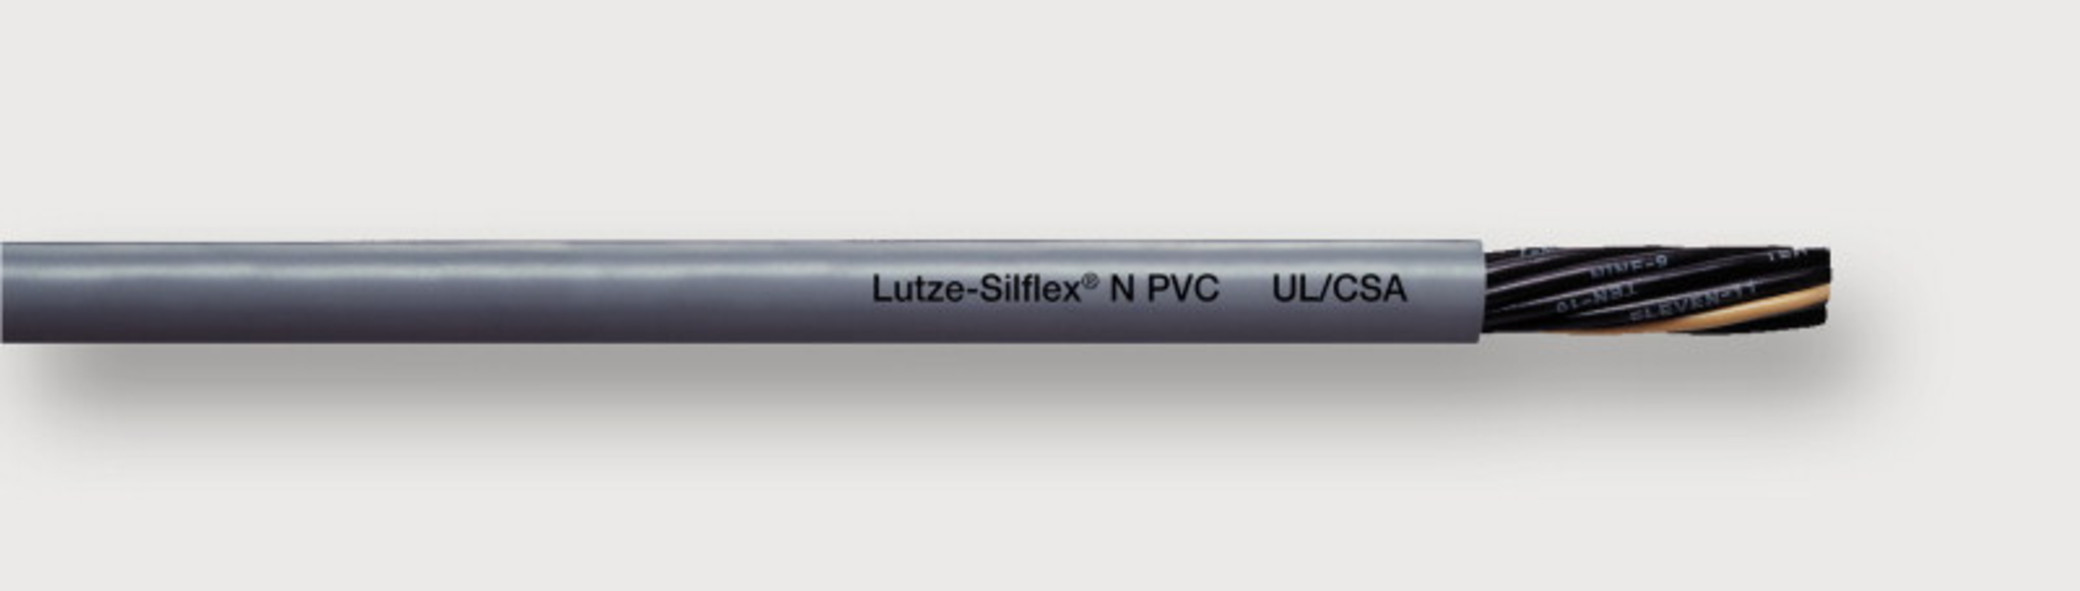 108353A - LÜTZE SILFLEX® N PVC with UL/CE Approvals